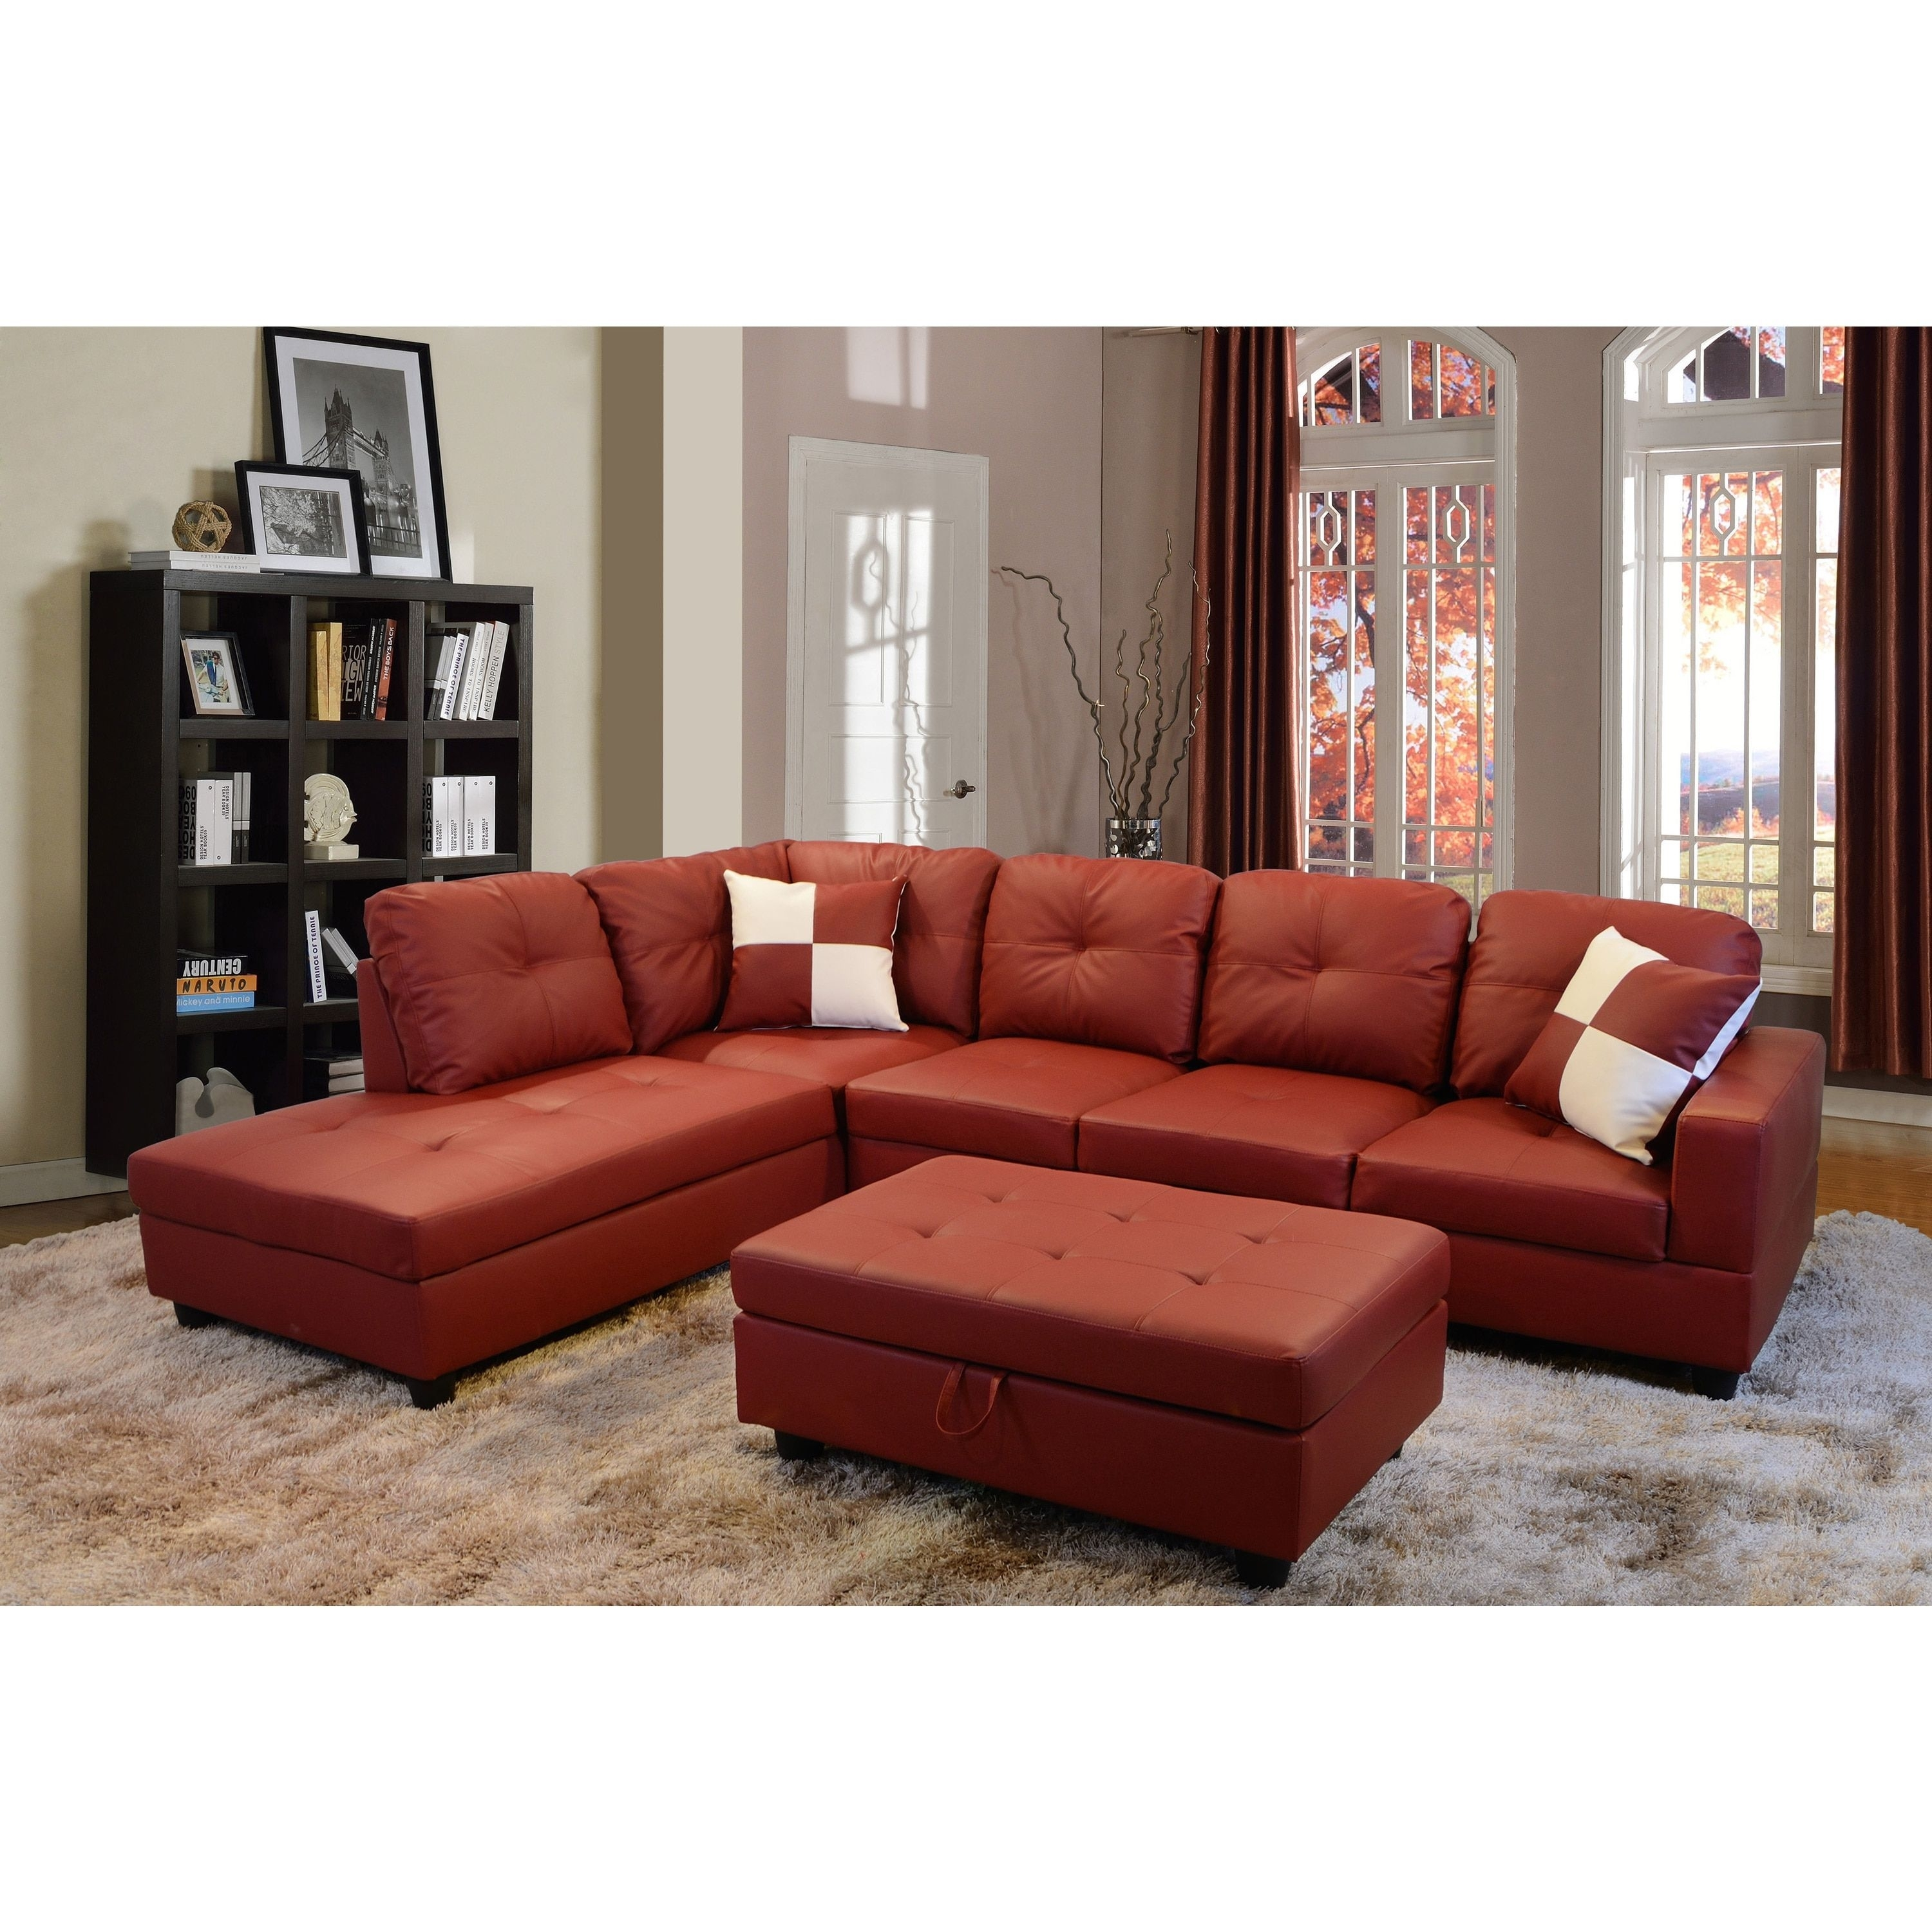 Delma 3 Piece Red Faux Leather Furniture Set (Delma 3 Pc Faux Throughout Tenny Dark Grey 2 Piece Right Facing Chaise Sectionals With 2 Headrest (View 10 of 25)